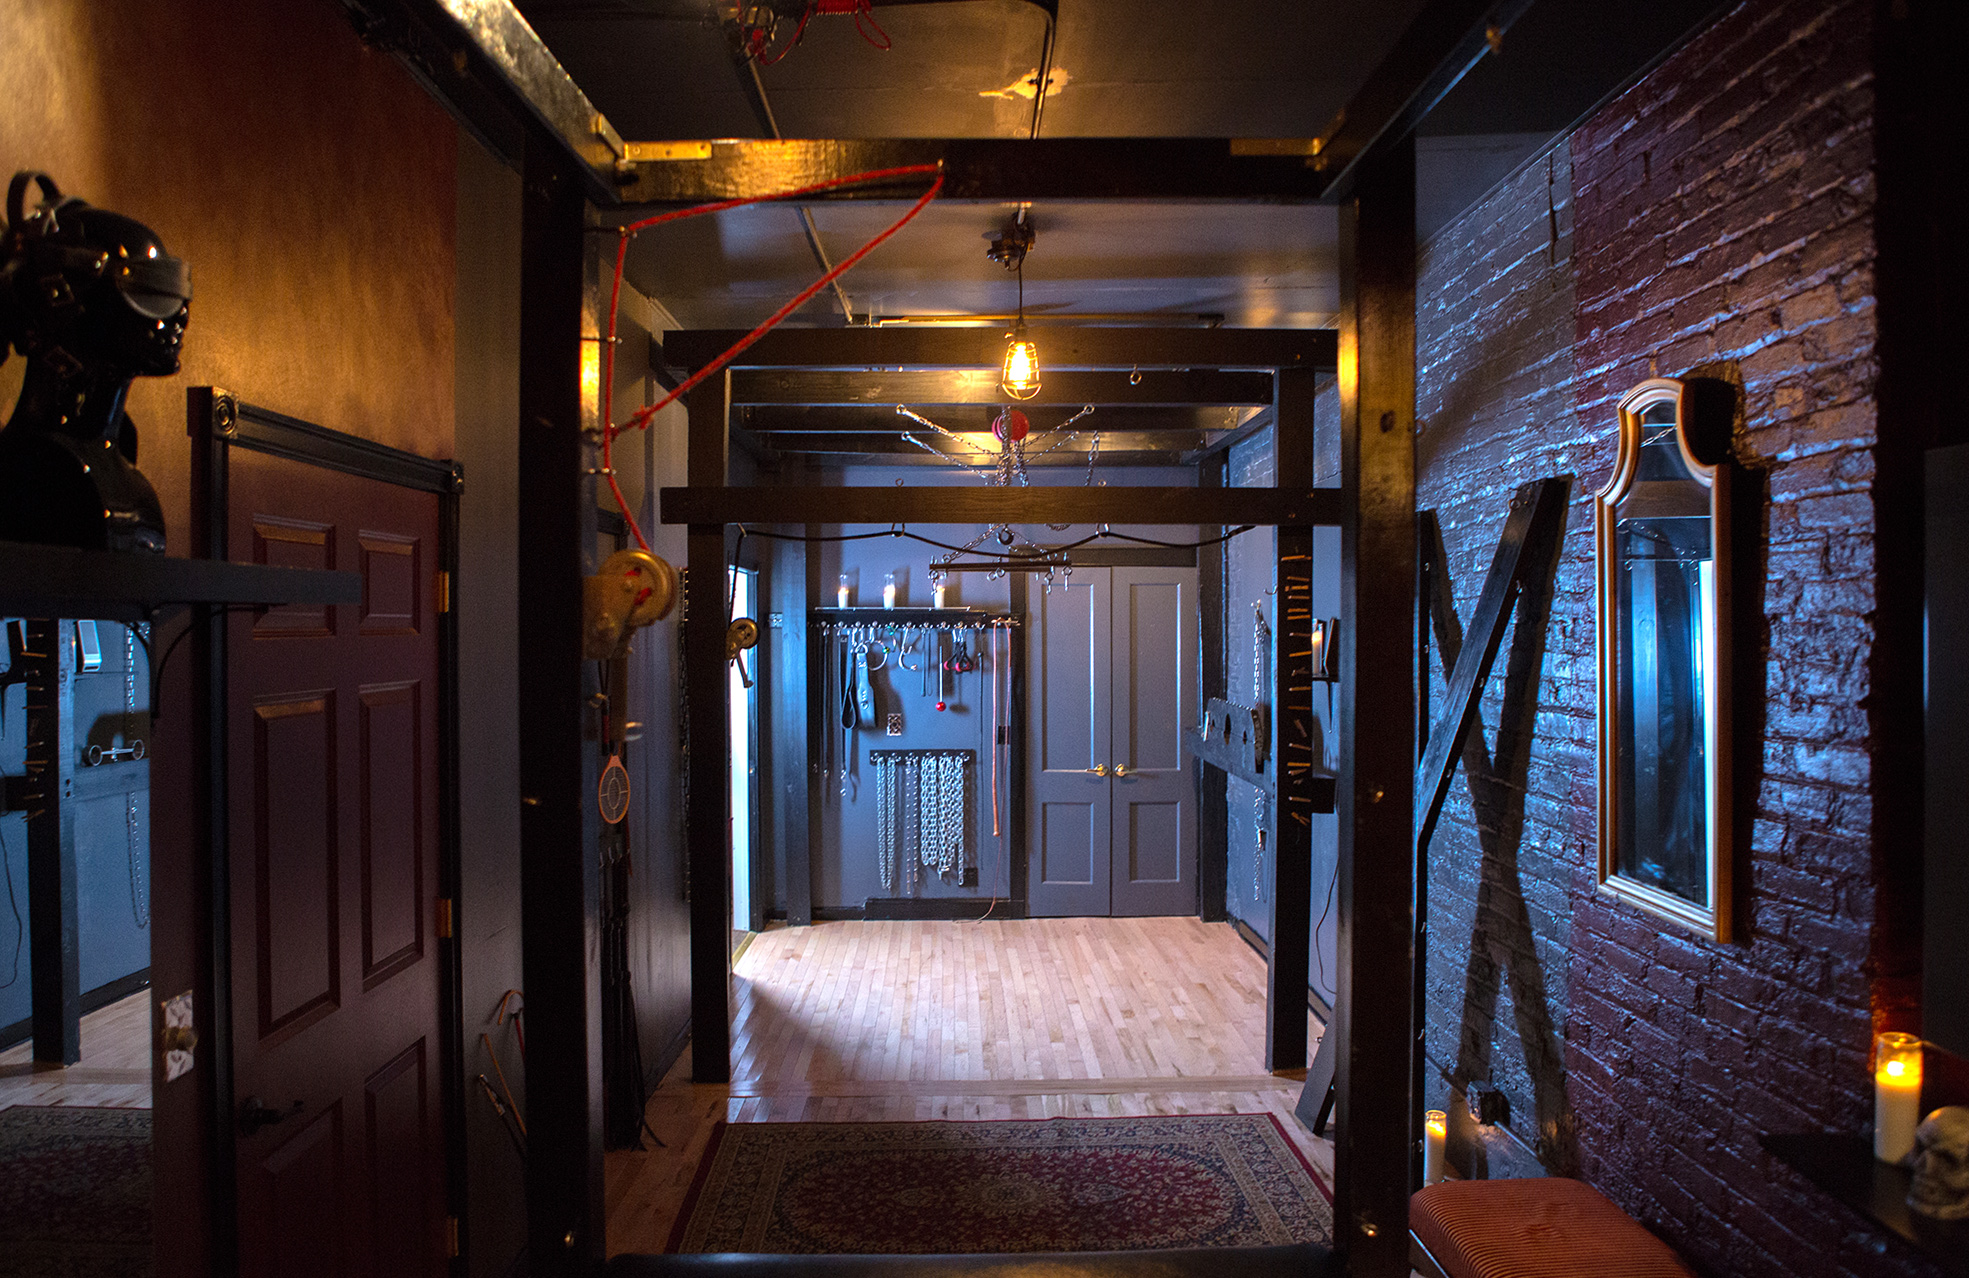 Meuble Bdsm The Chamber Available For Rent By The Hour, Day Or Overnight